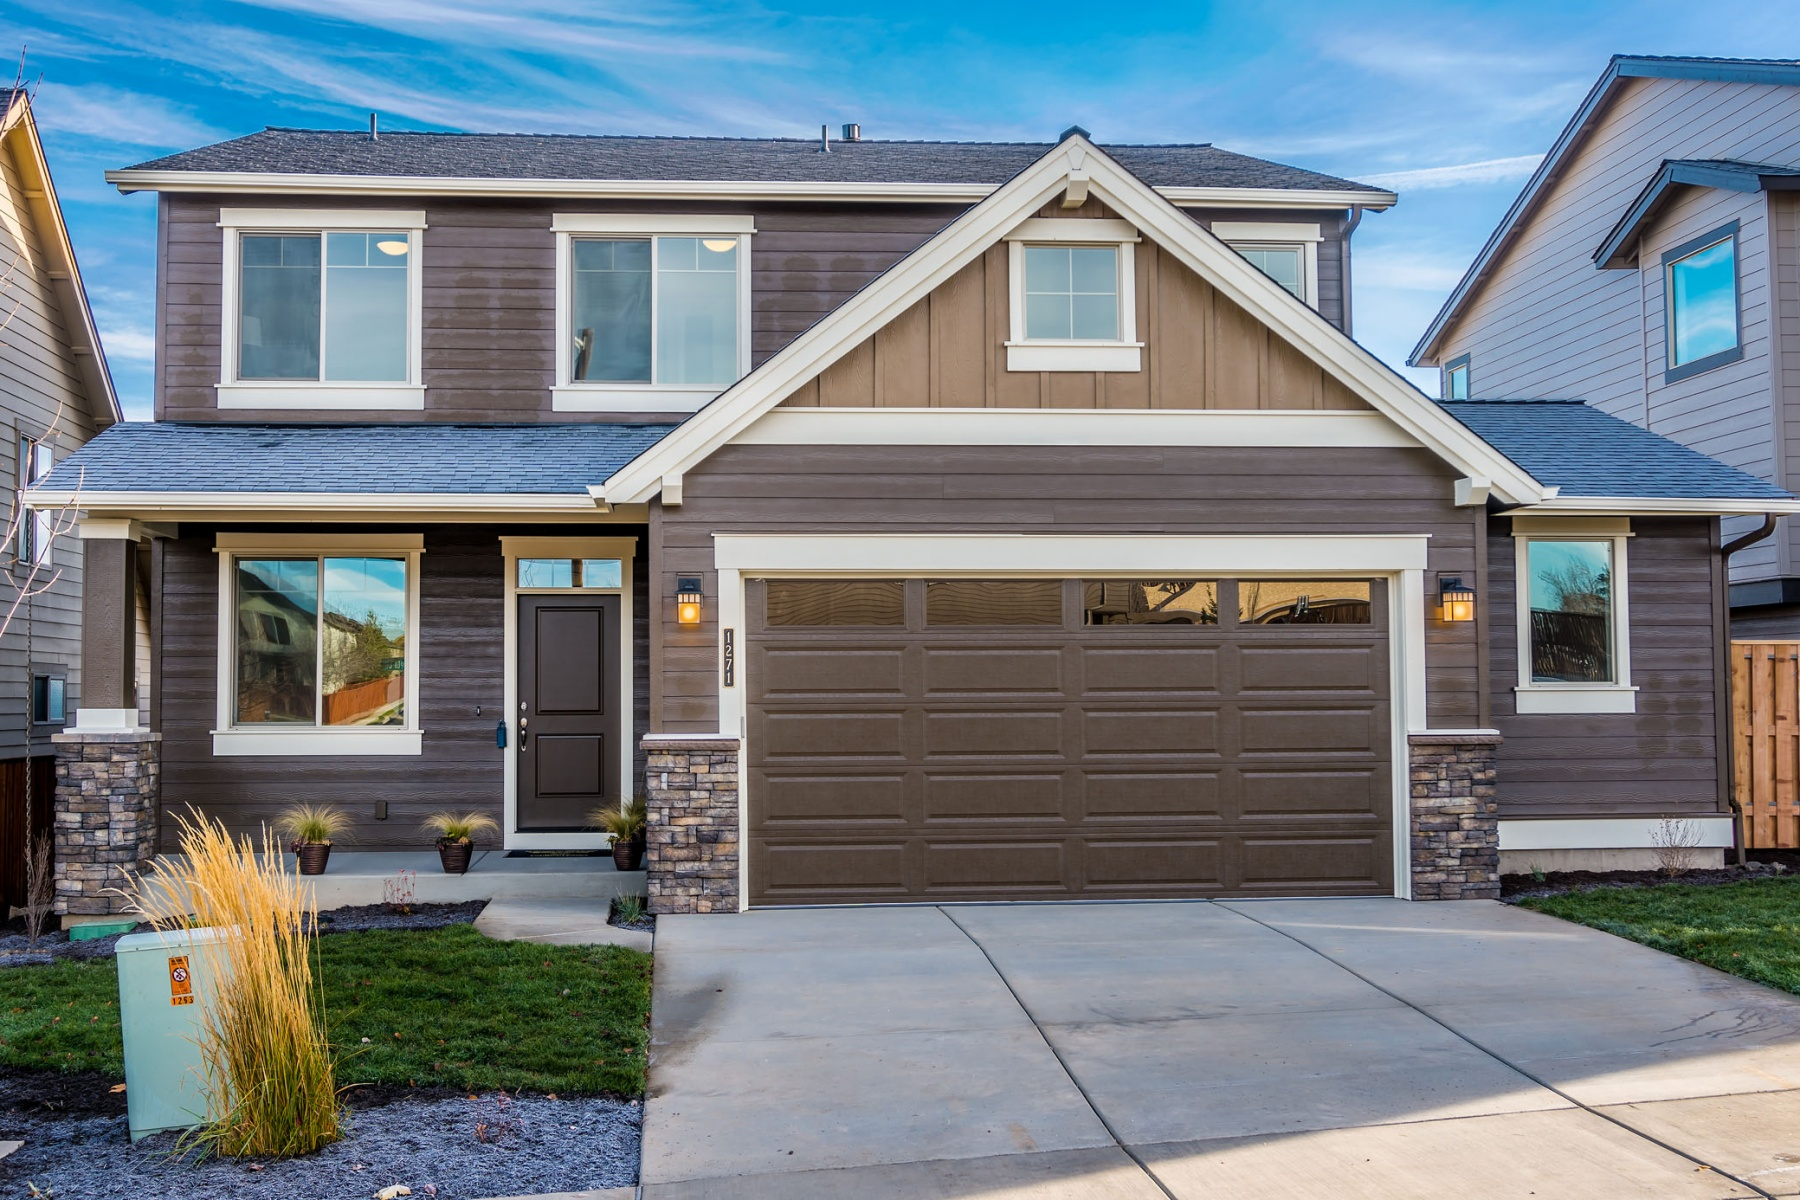 Single Family Home for Sale at New Construction in Ochoco Pointe 840 NE Steins Pillar Dr Lot 92 Prineville, Oregon, 97754 United States